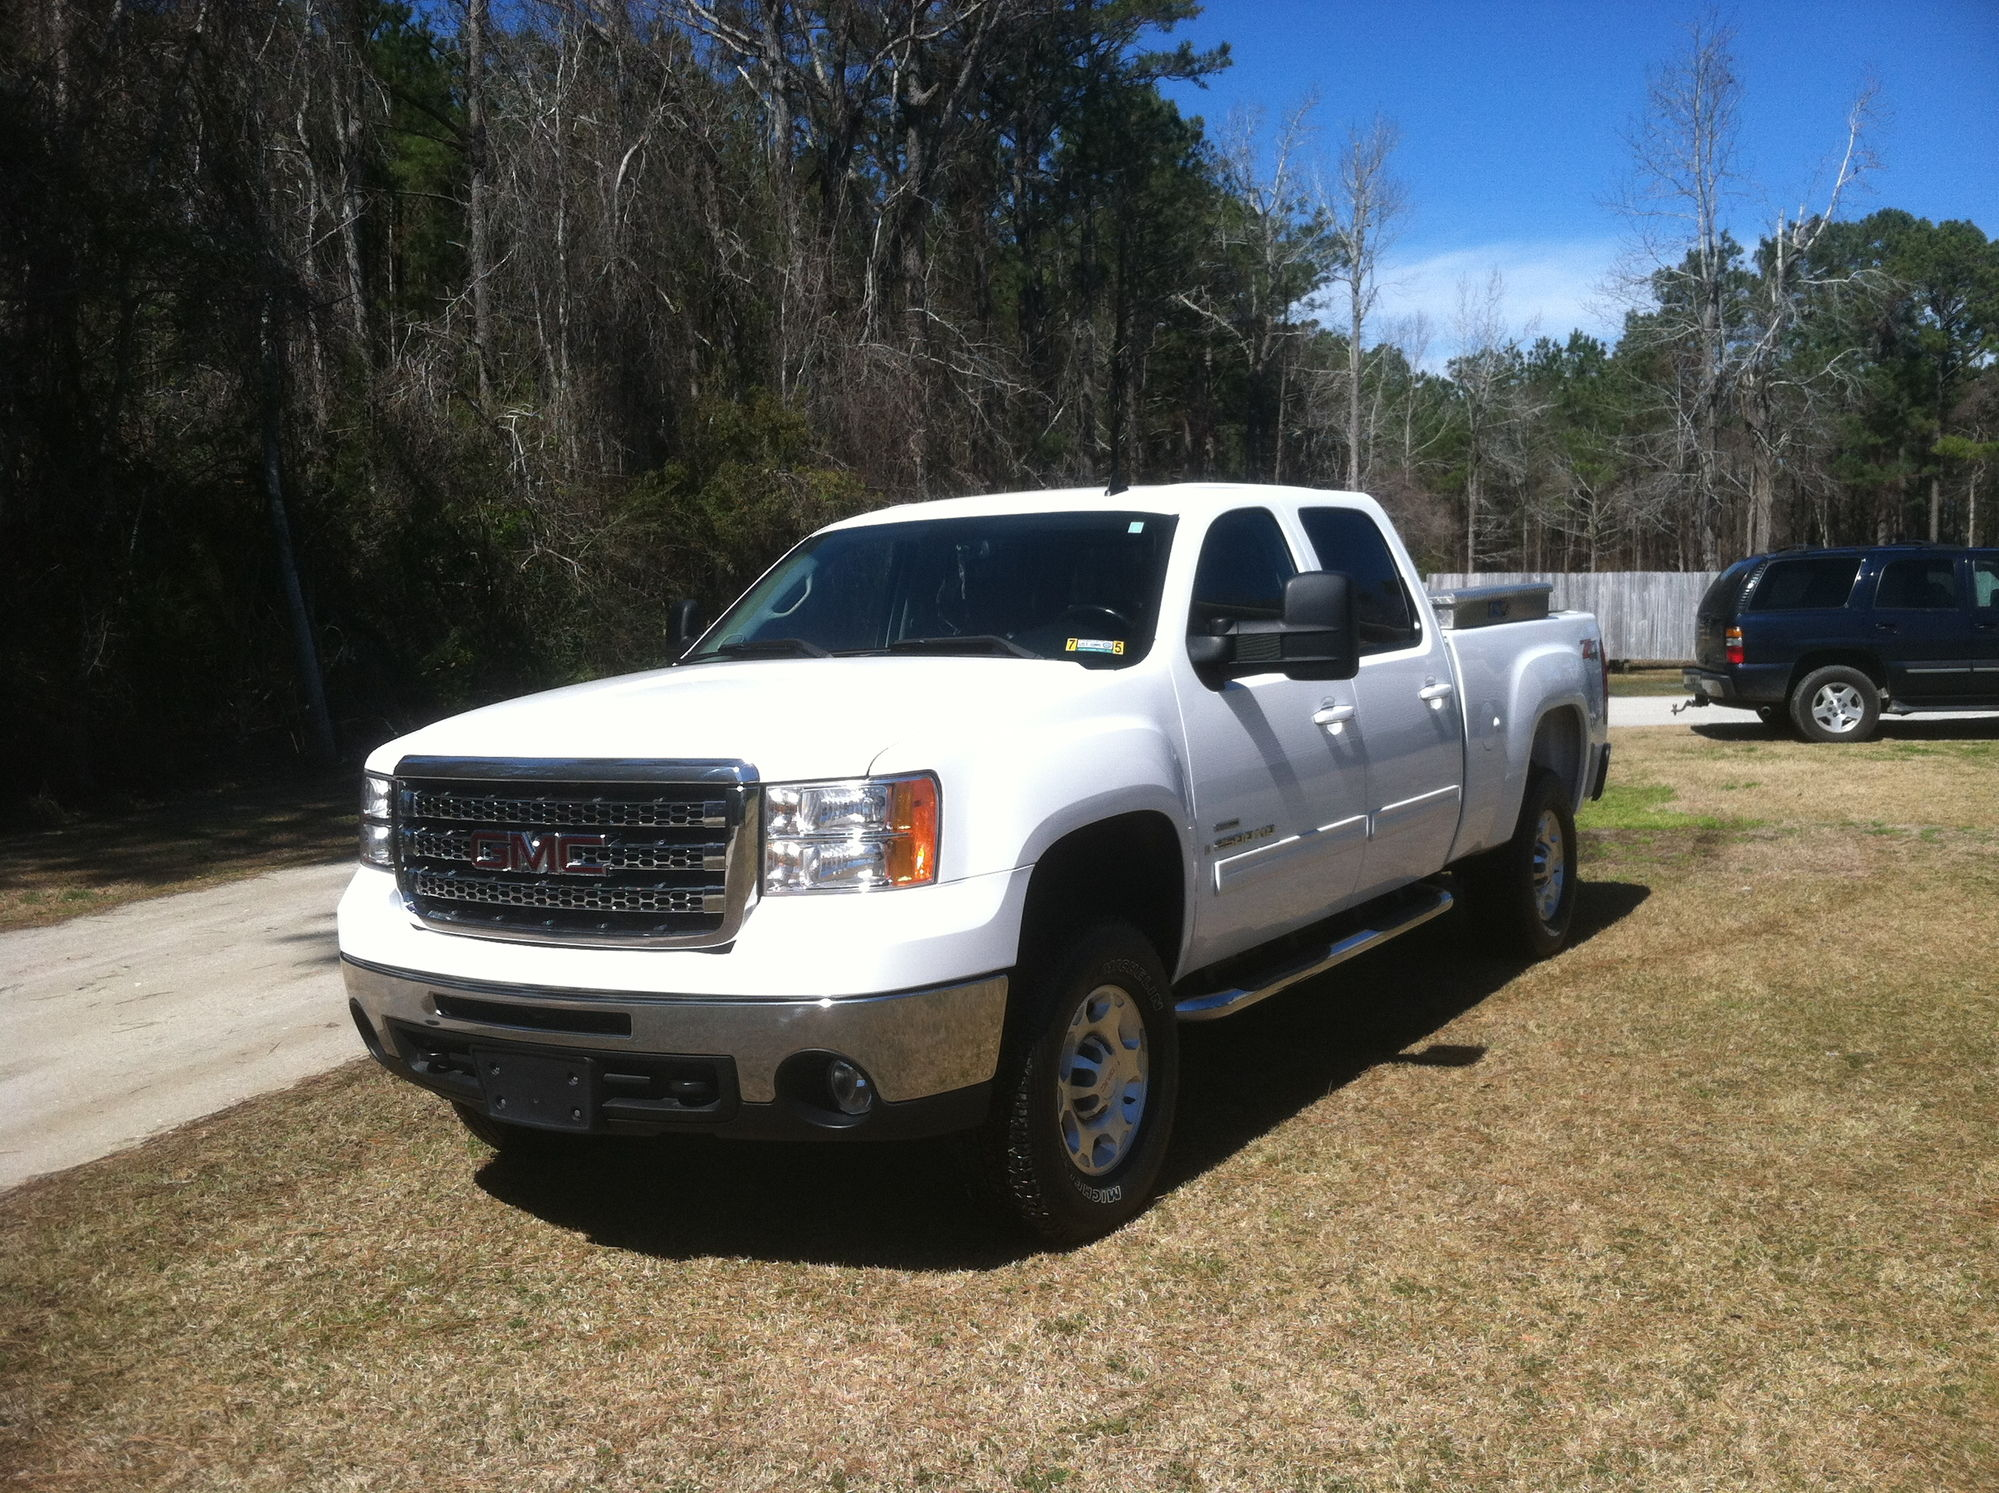 2008 gmc sierra 2500 hd slt the hull truth boating and fishing forum truck is located in eastern carteret co nc 252 665 0082 publicscrutiny Choice Image